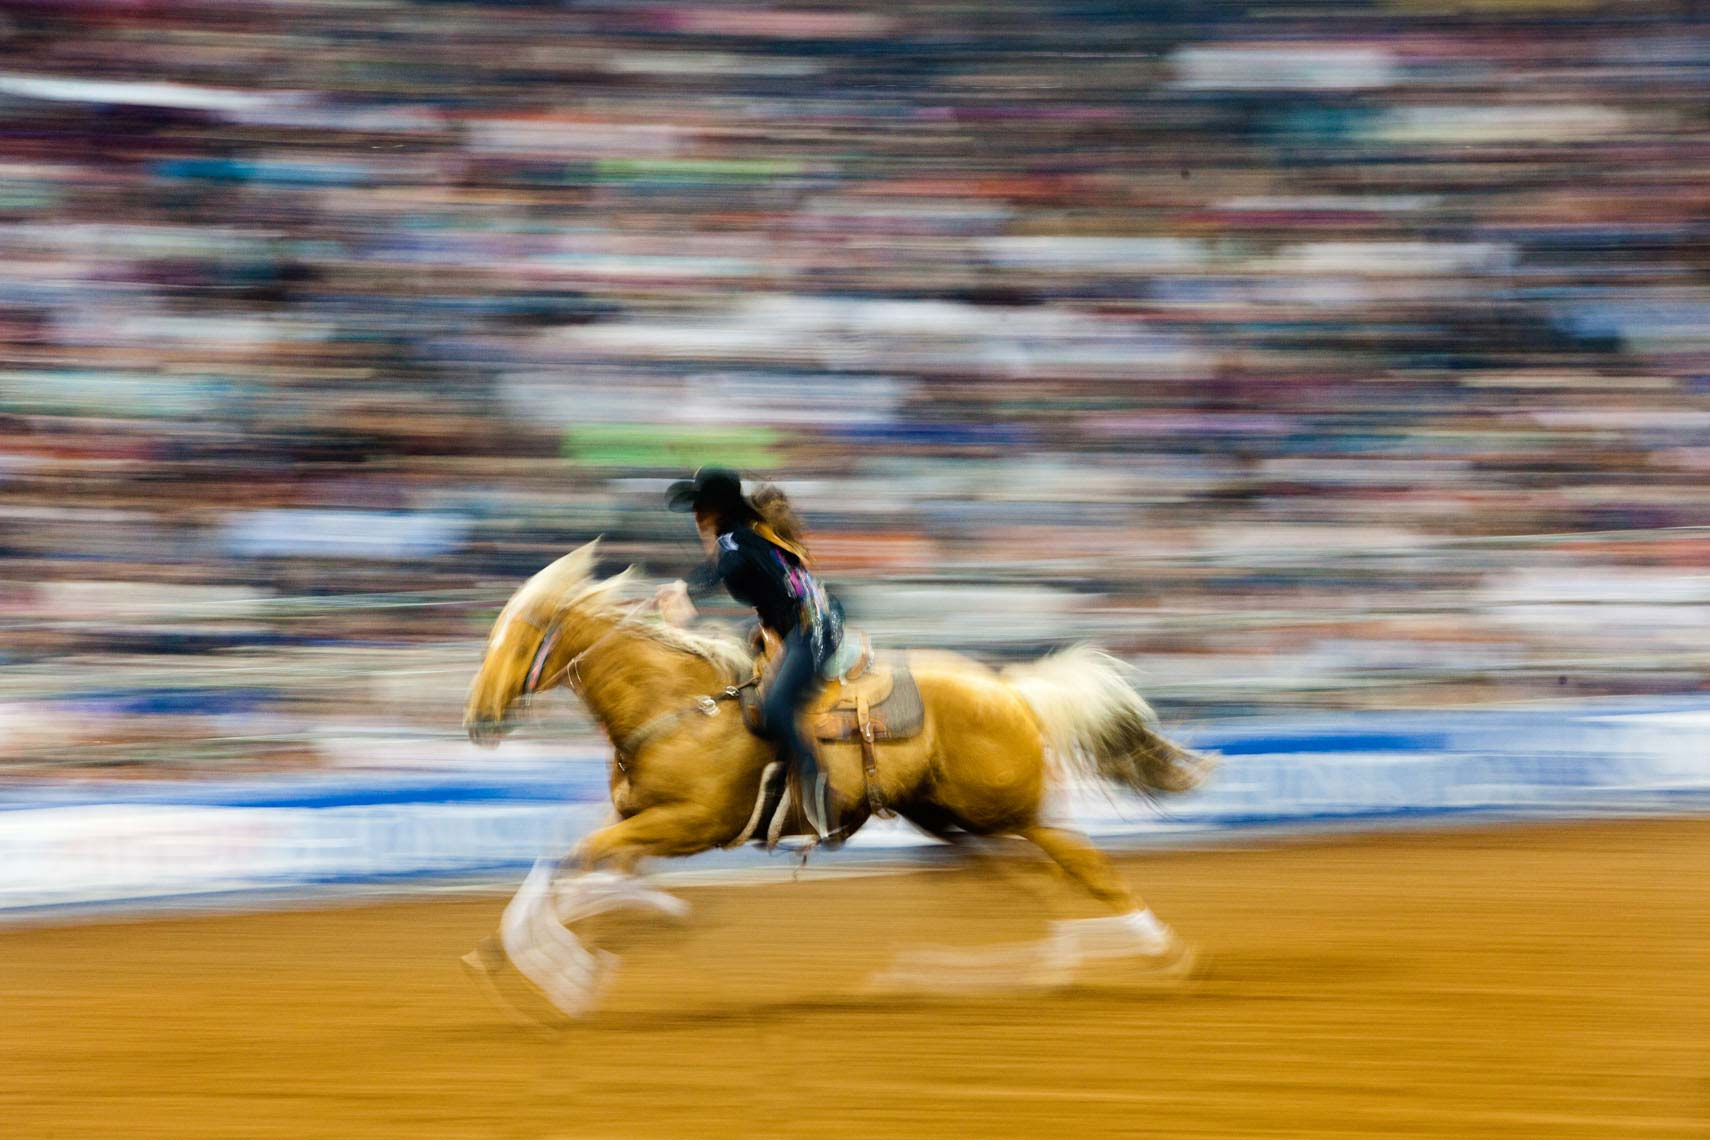 017_Daniel_Kramer_RodeoHouston